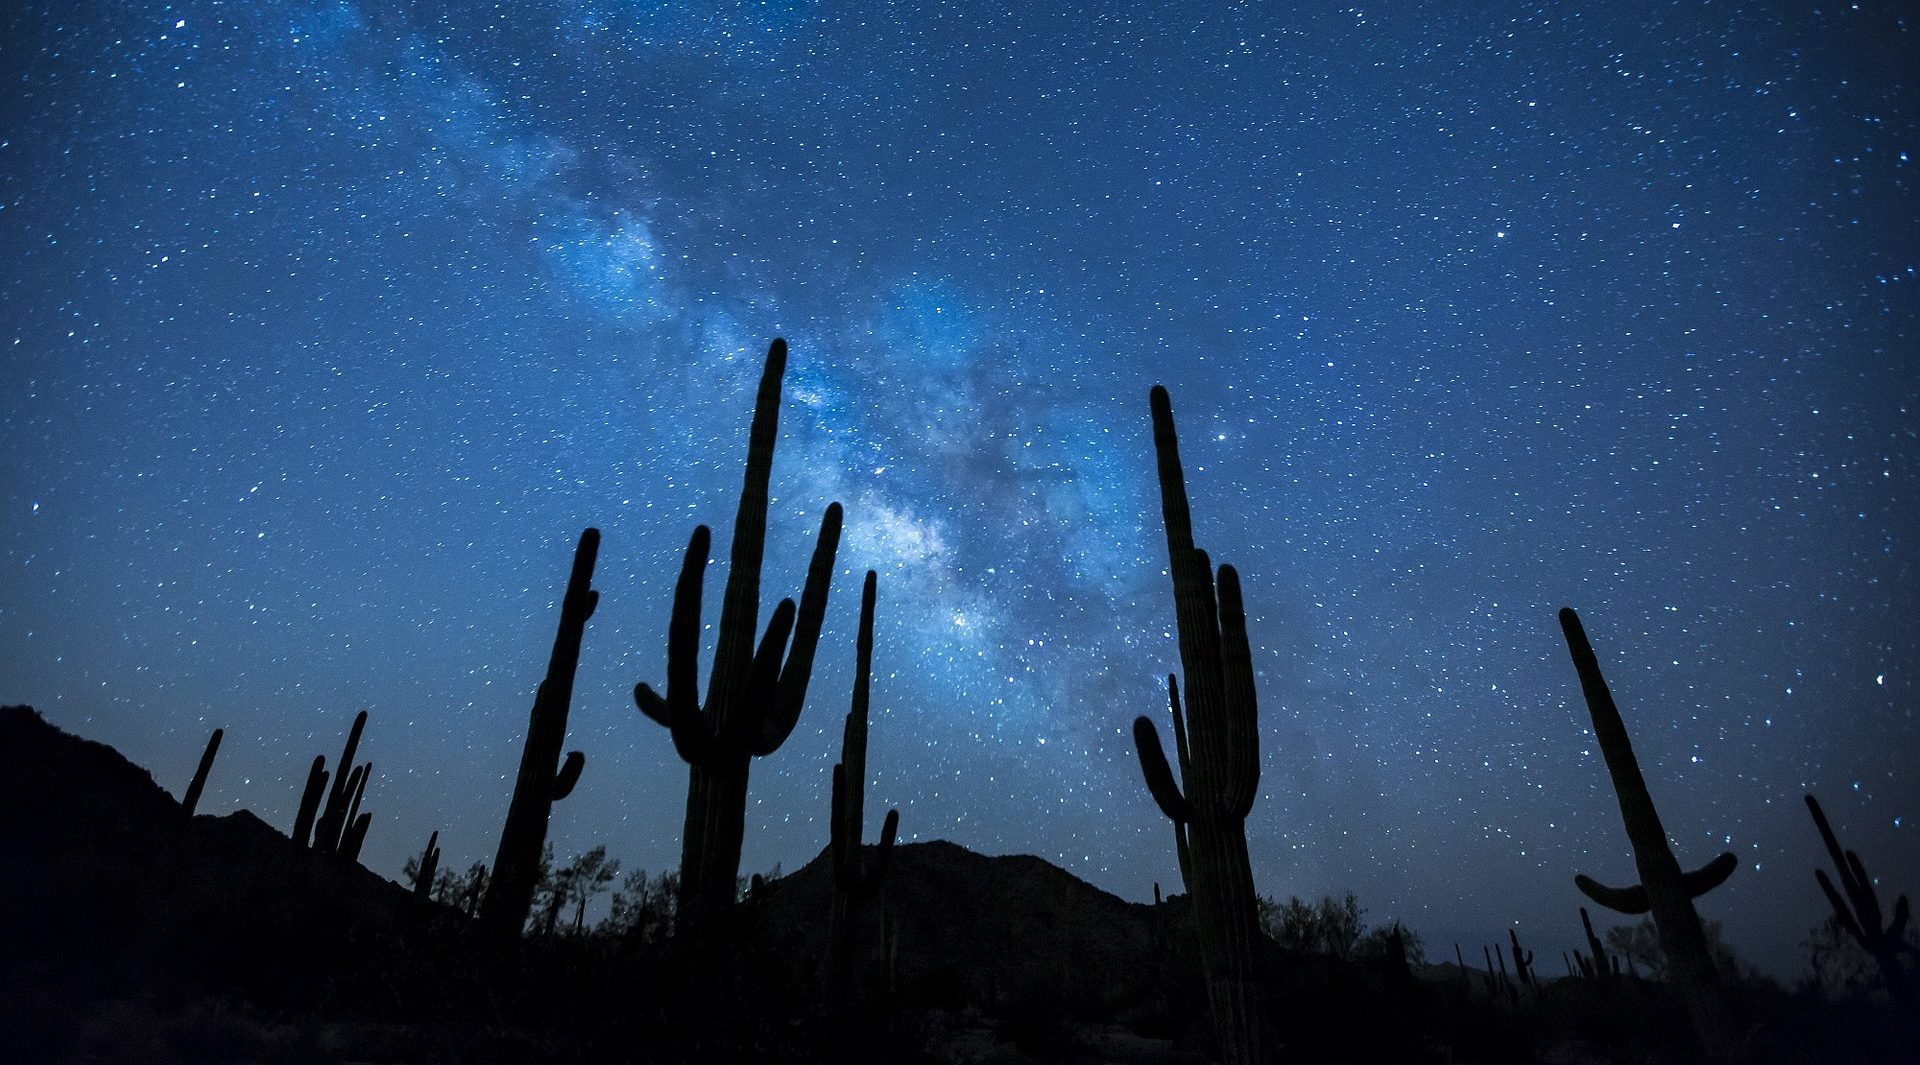 Photo of saguaro cacti at night with the Milky Way in the background.